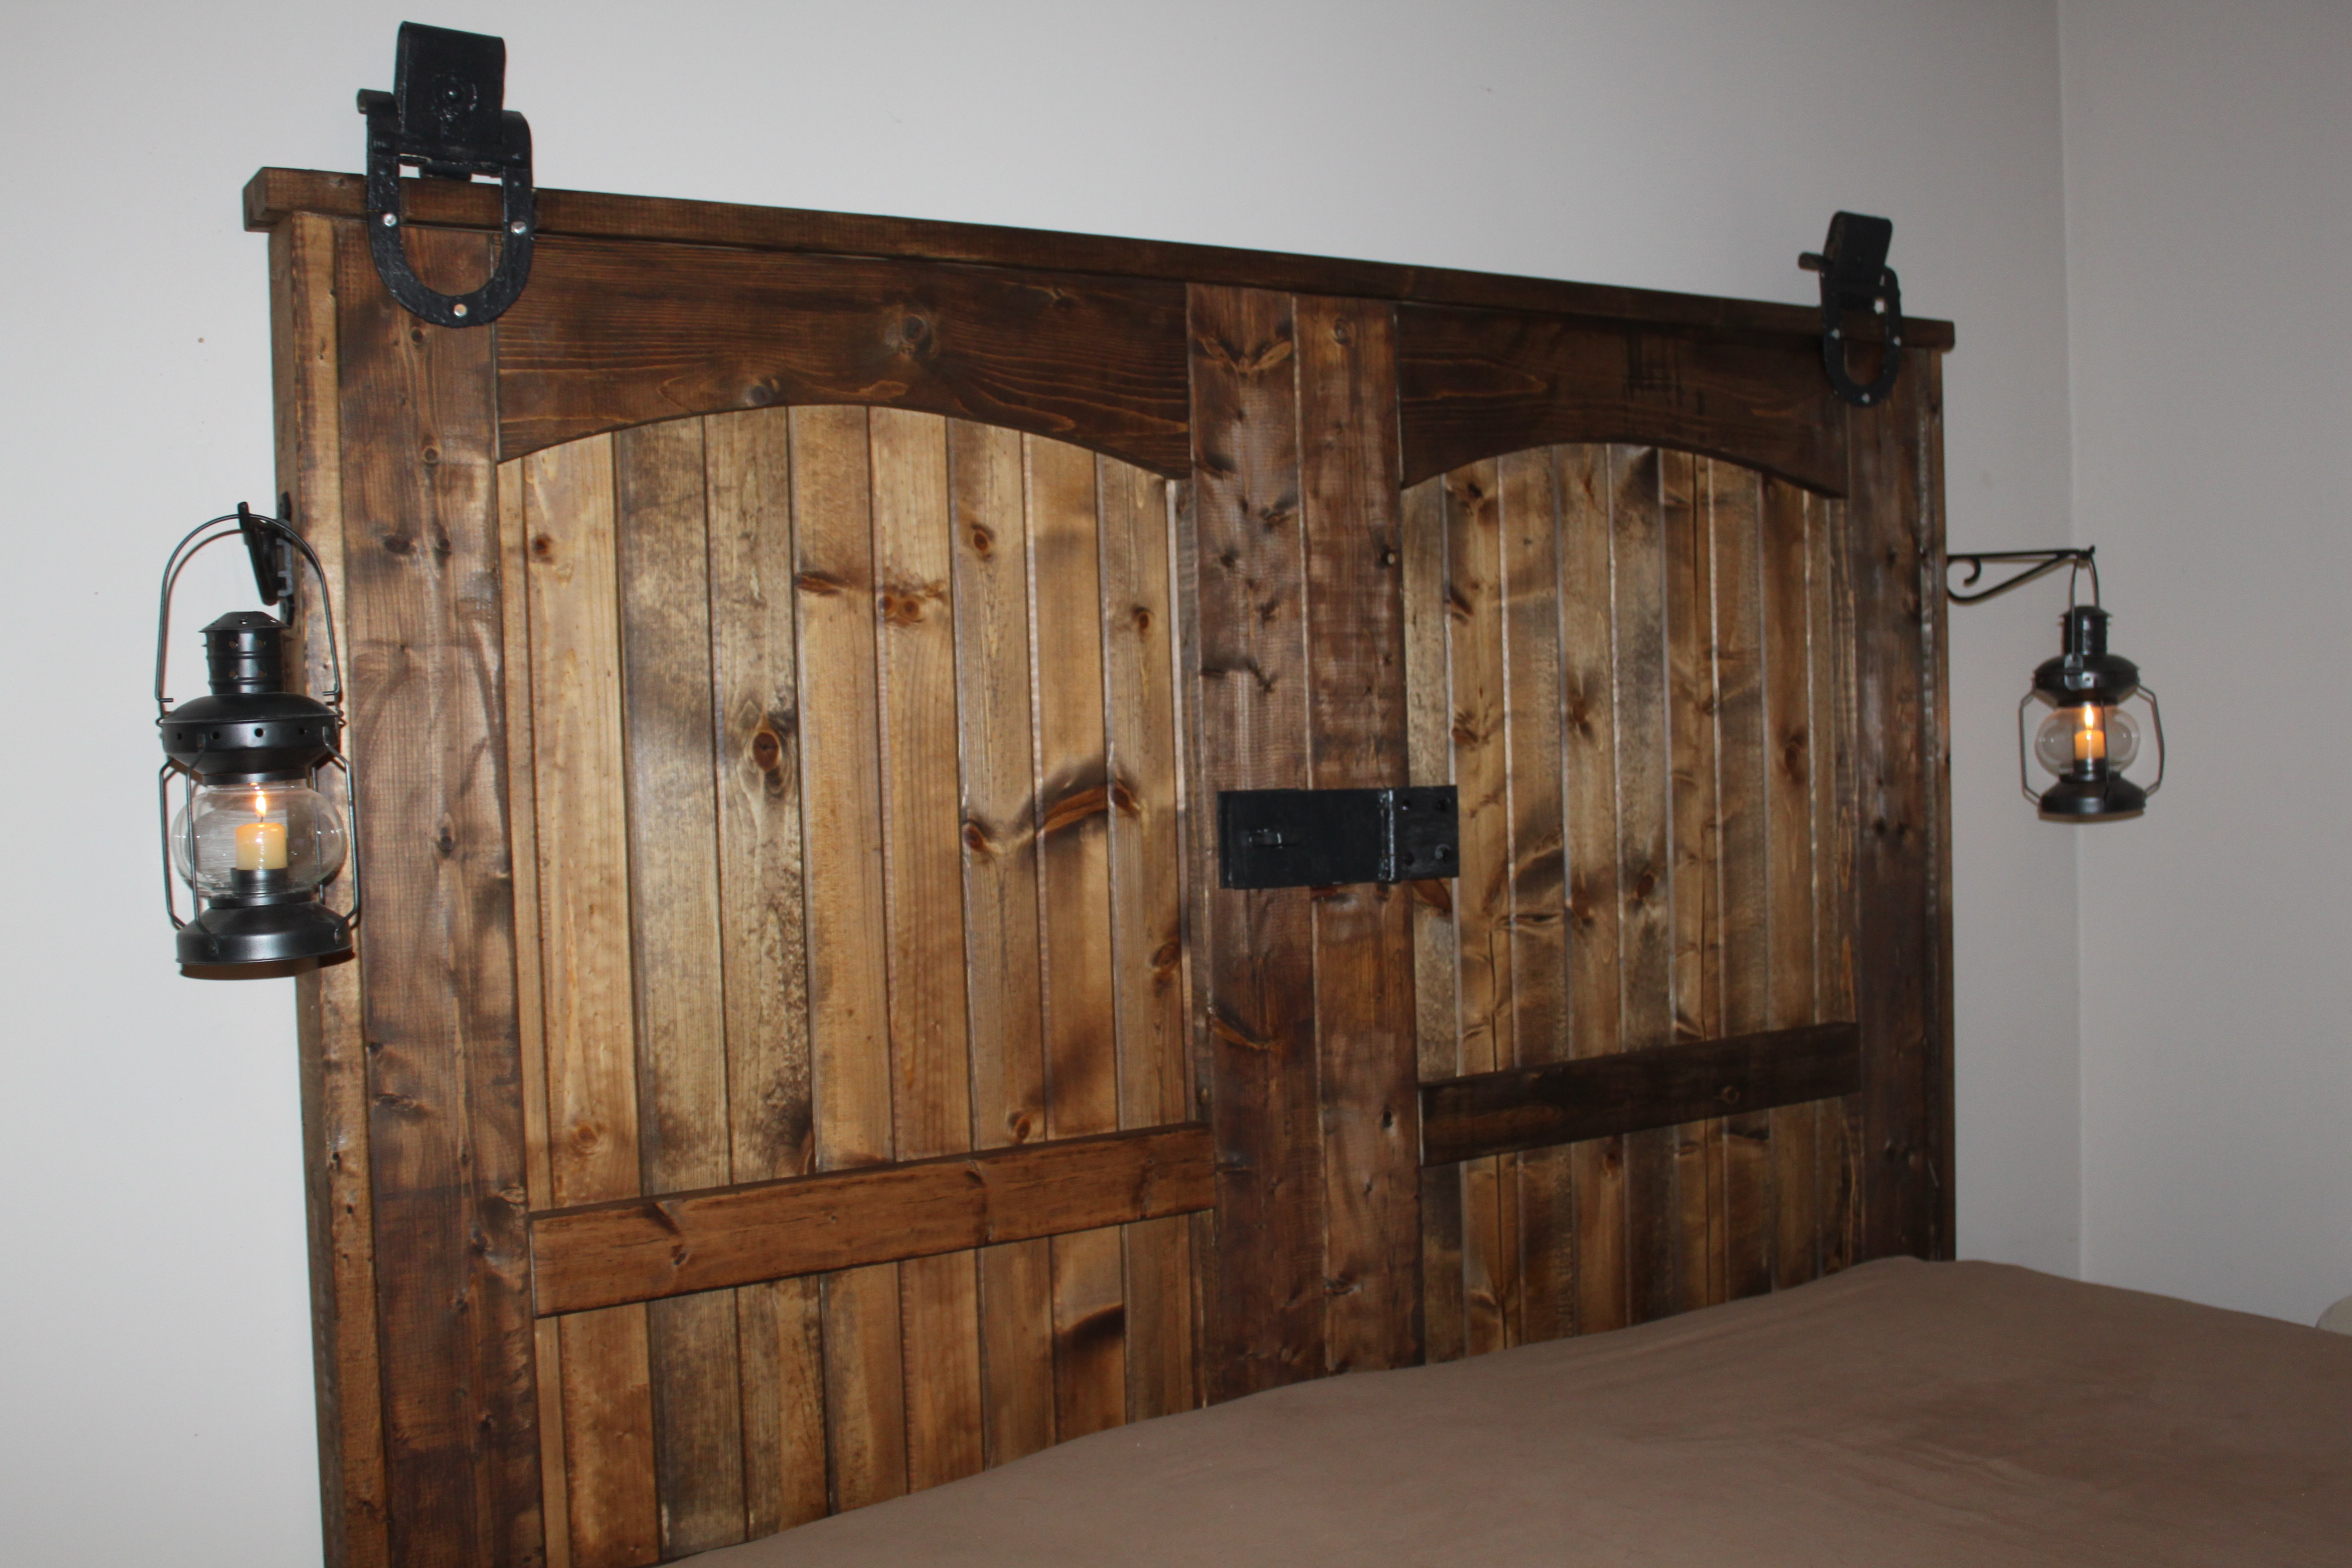 Rustic Barn Door Headboard DIY 2352 x 1568